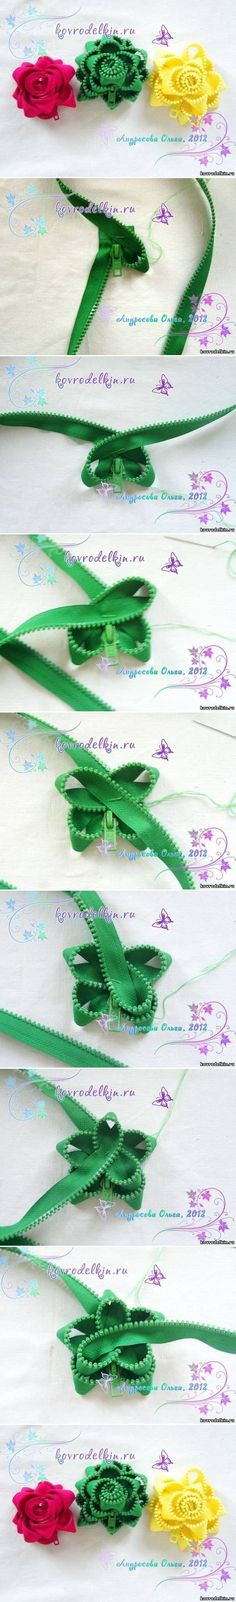 DIY Simple Zipper Flower Brooch DIY Projects